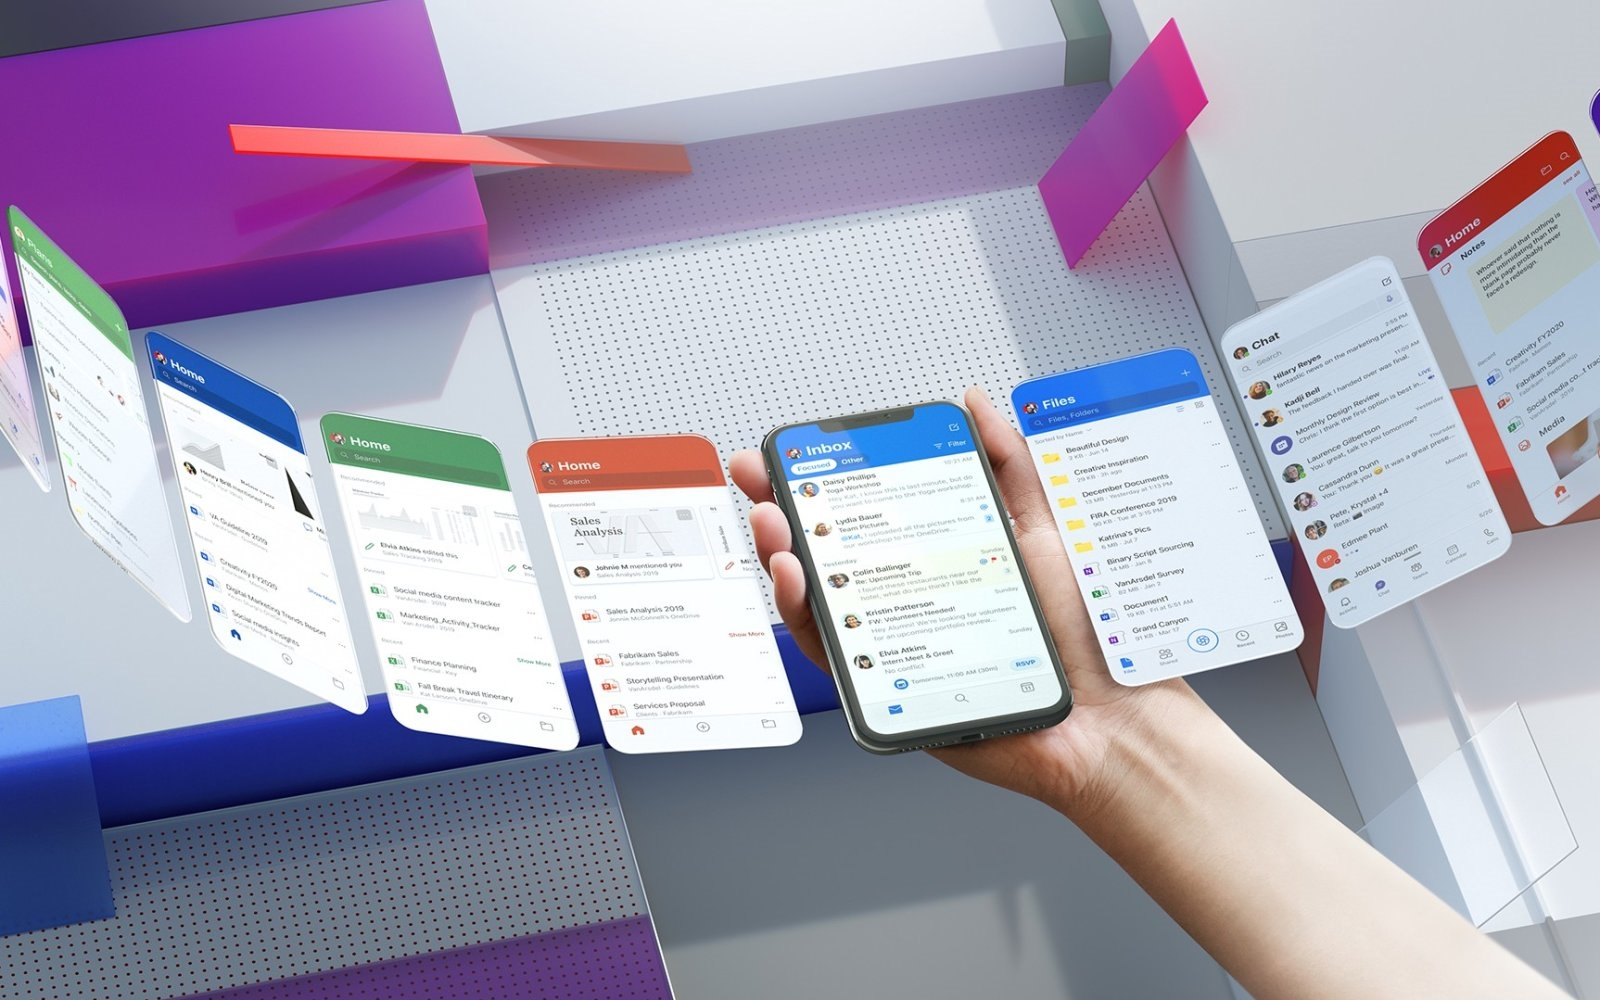 Microsoft's redesigned Office mobile apps read text out loud | DeviceDaily.com